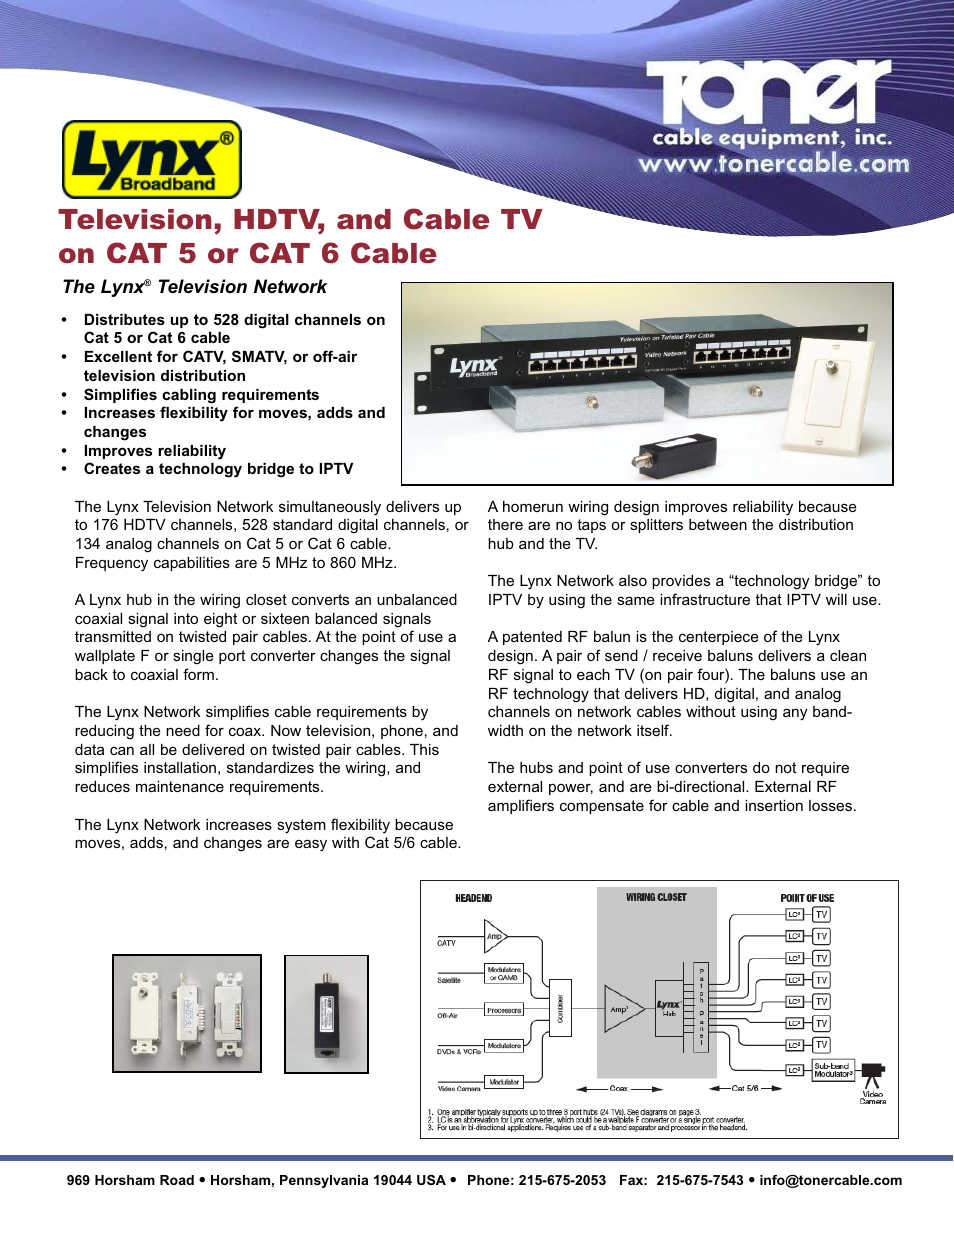 Toner Cable 040 0101 Television Rf On Cat 5 6 8 Port Lynx Home Run Wiring Design Lt Hub With Rackmount User Manual 2 Pages